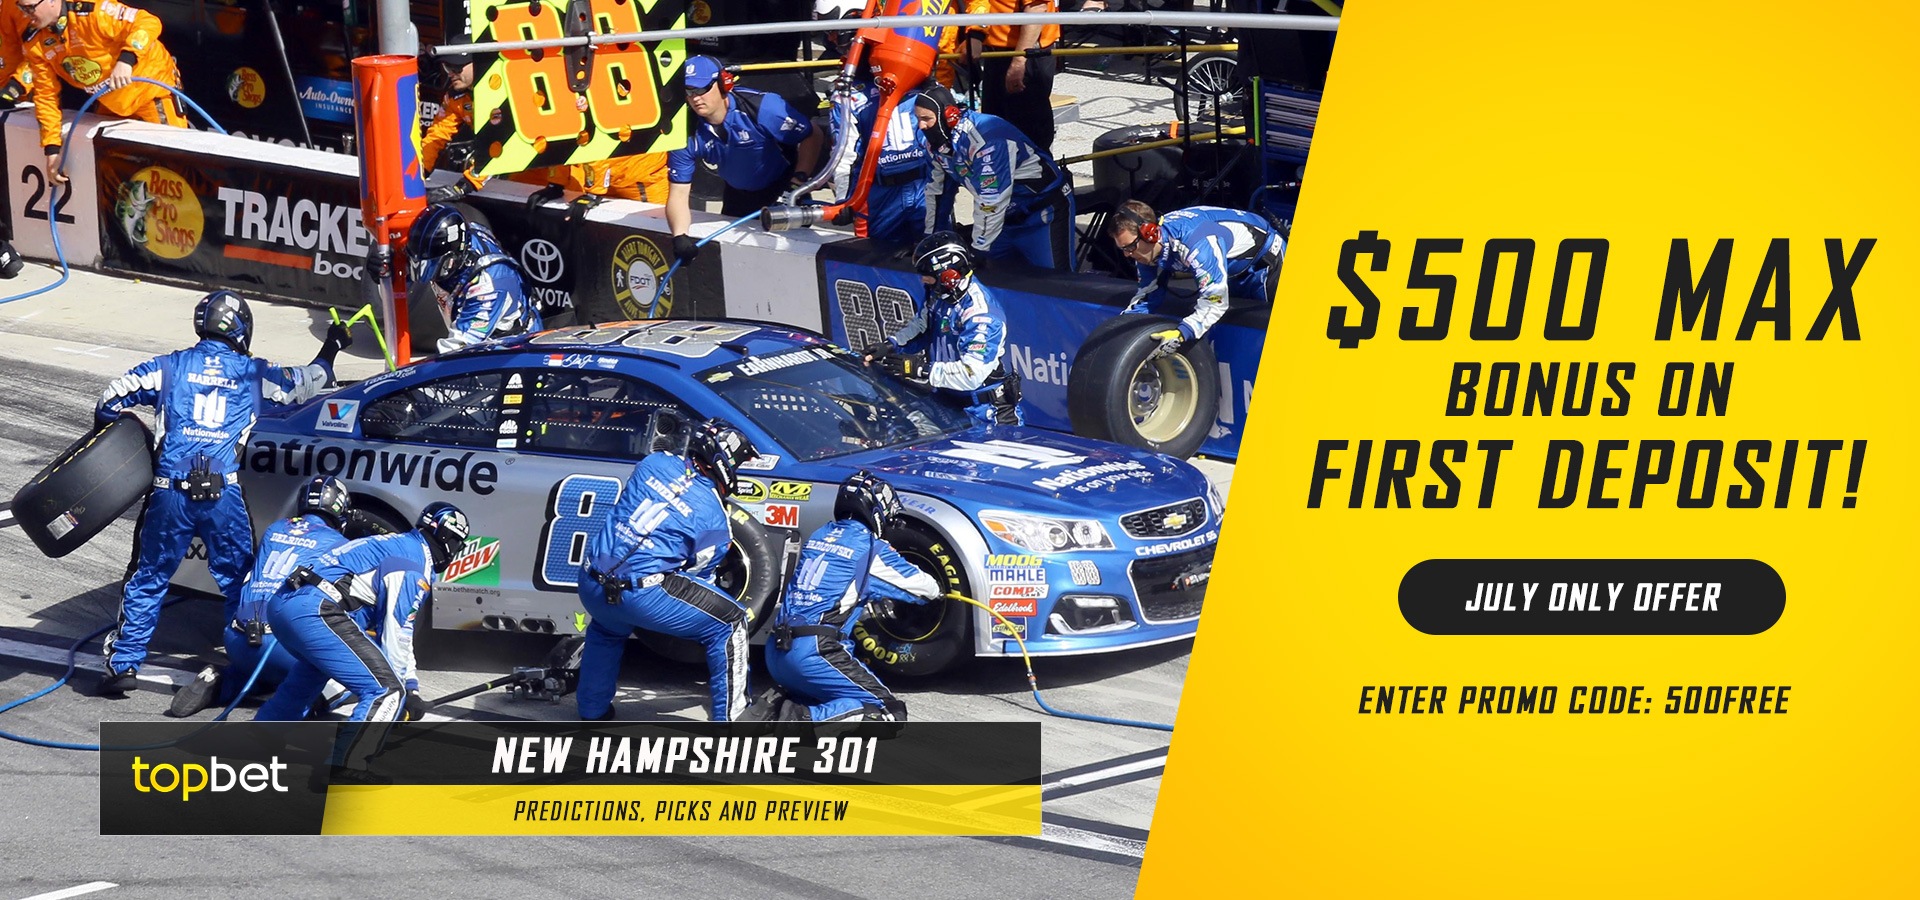 What are the Las Vegas odds for the NASCAR race at New Hampshire?